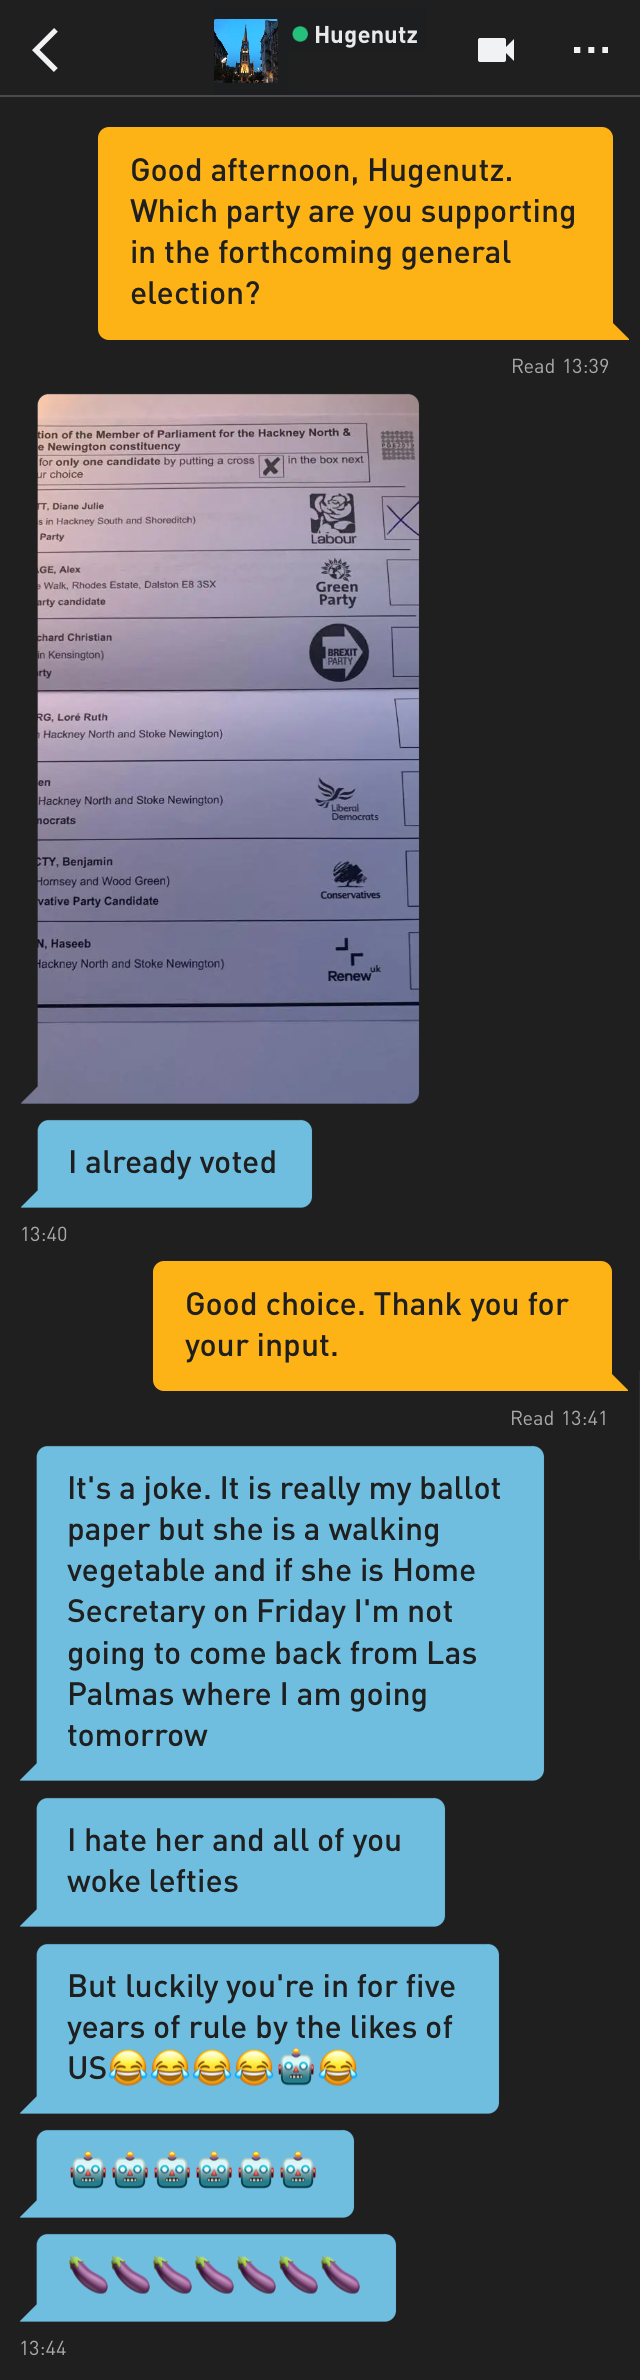 Me: Good afternoon, Hugenutz. Which party are you supporting in the forthcoming general election?